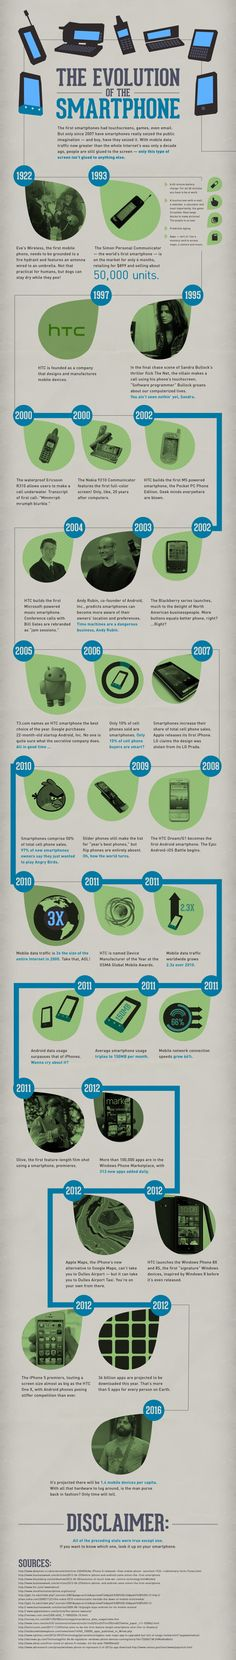 INFOGRAPHIC: 36 billion apps expected to be downloaded in 2012 | Mobile content industry news | Mobile Entertainment